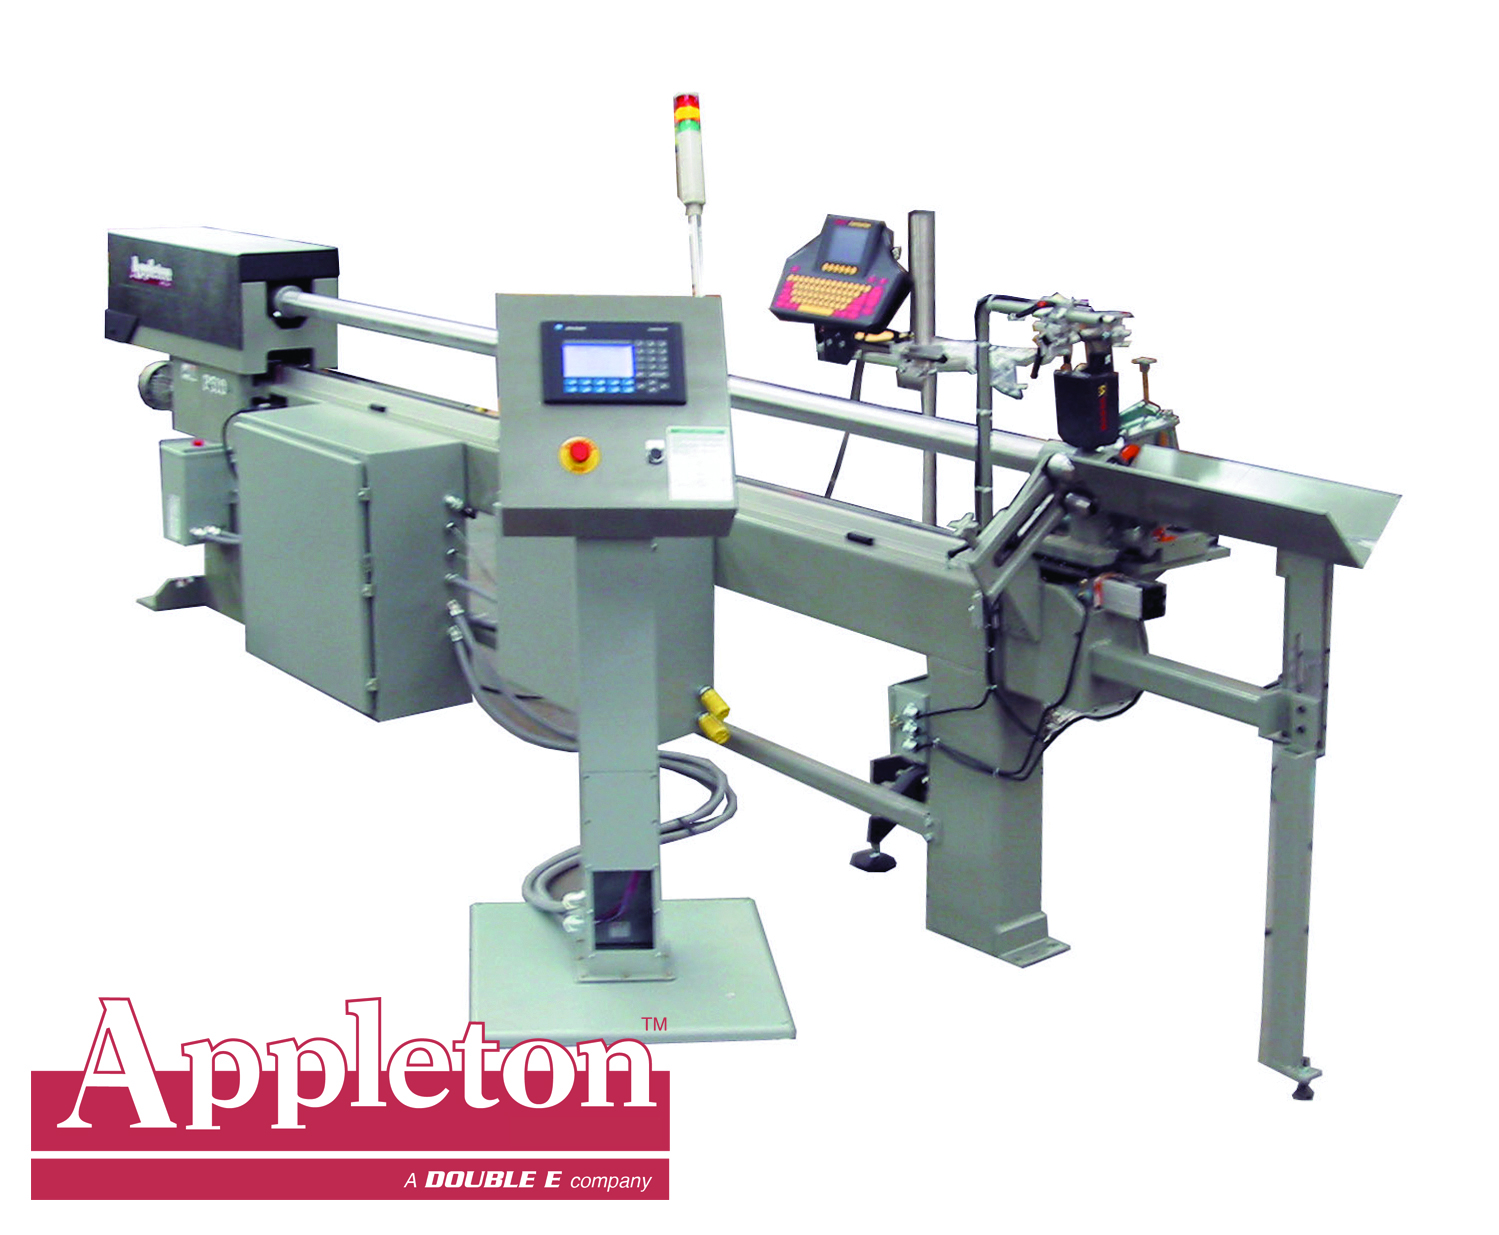 Appleton P5 Line of Automatic Core Cutters